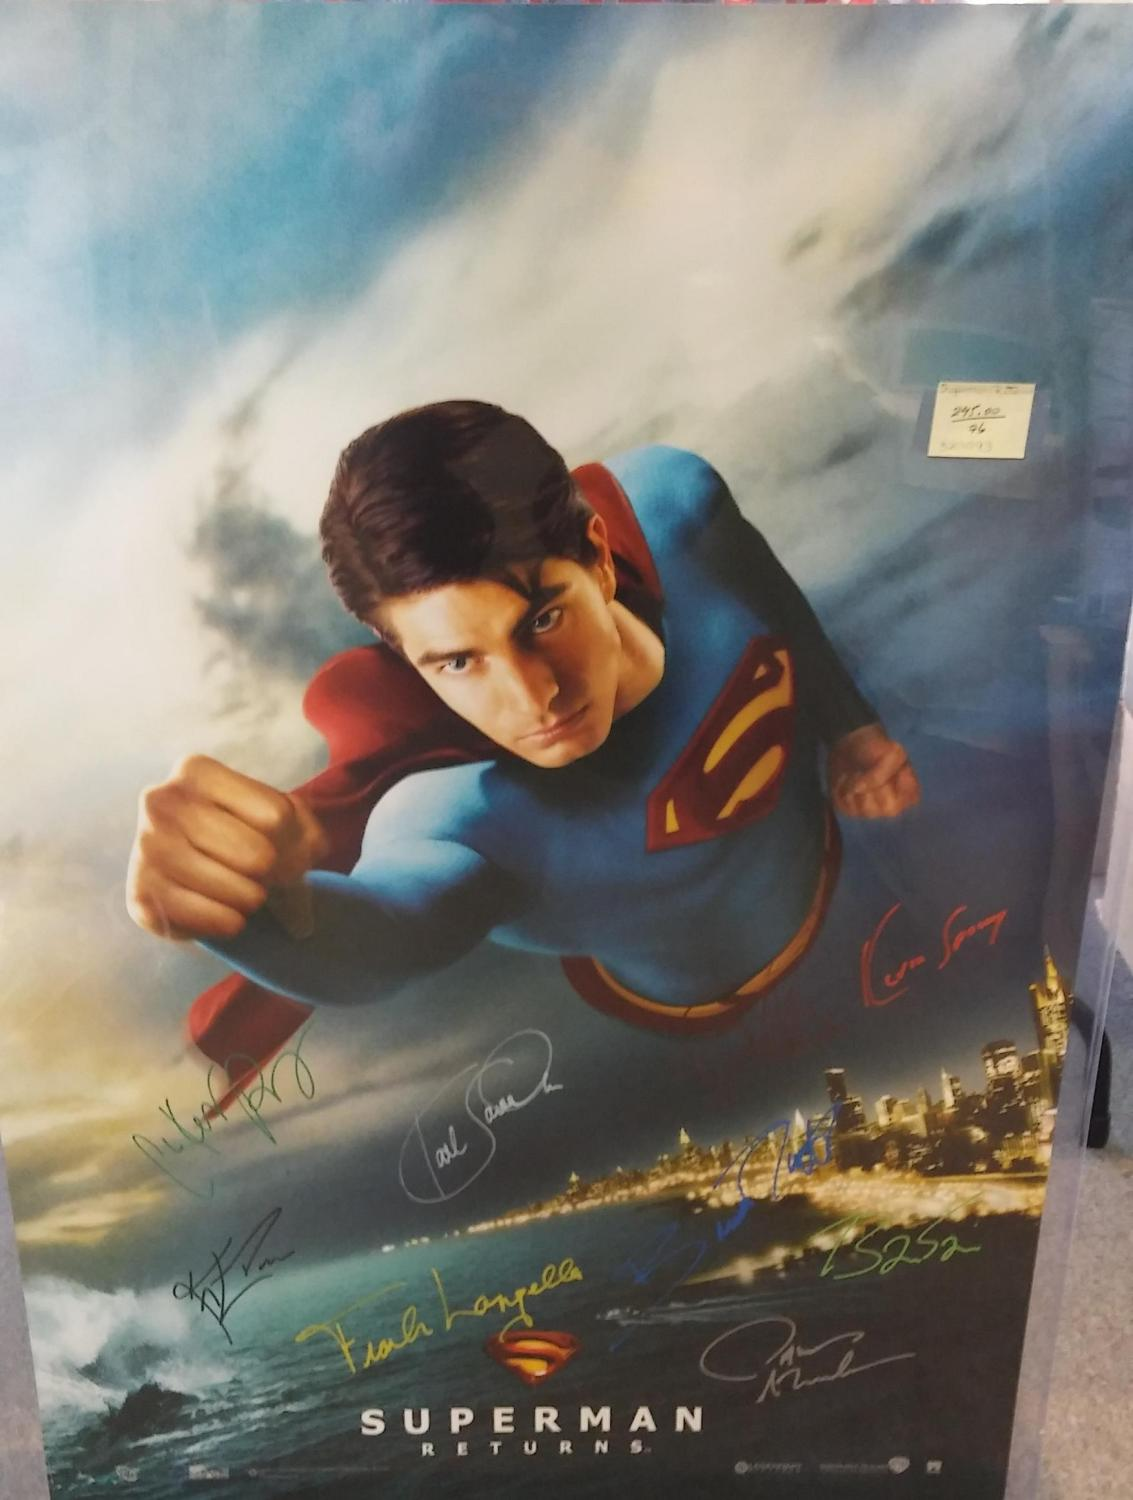 FULL SIZE MOVIE POSTER 'SUPERMAN RETURNS', *SIGNED* BY CAST (ORIGINAL POSTER), n/a